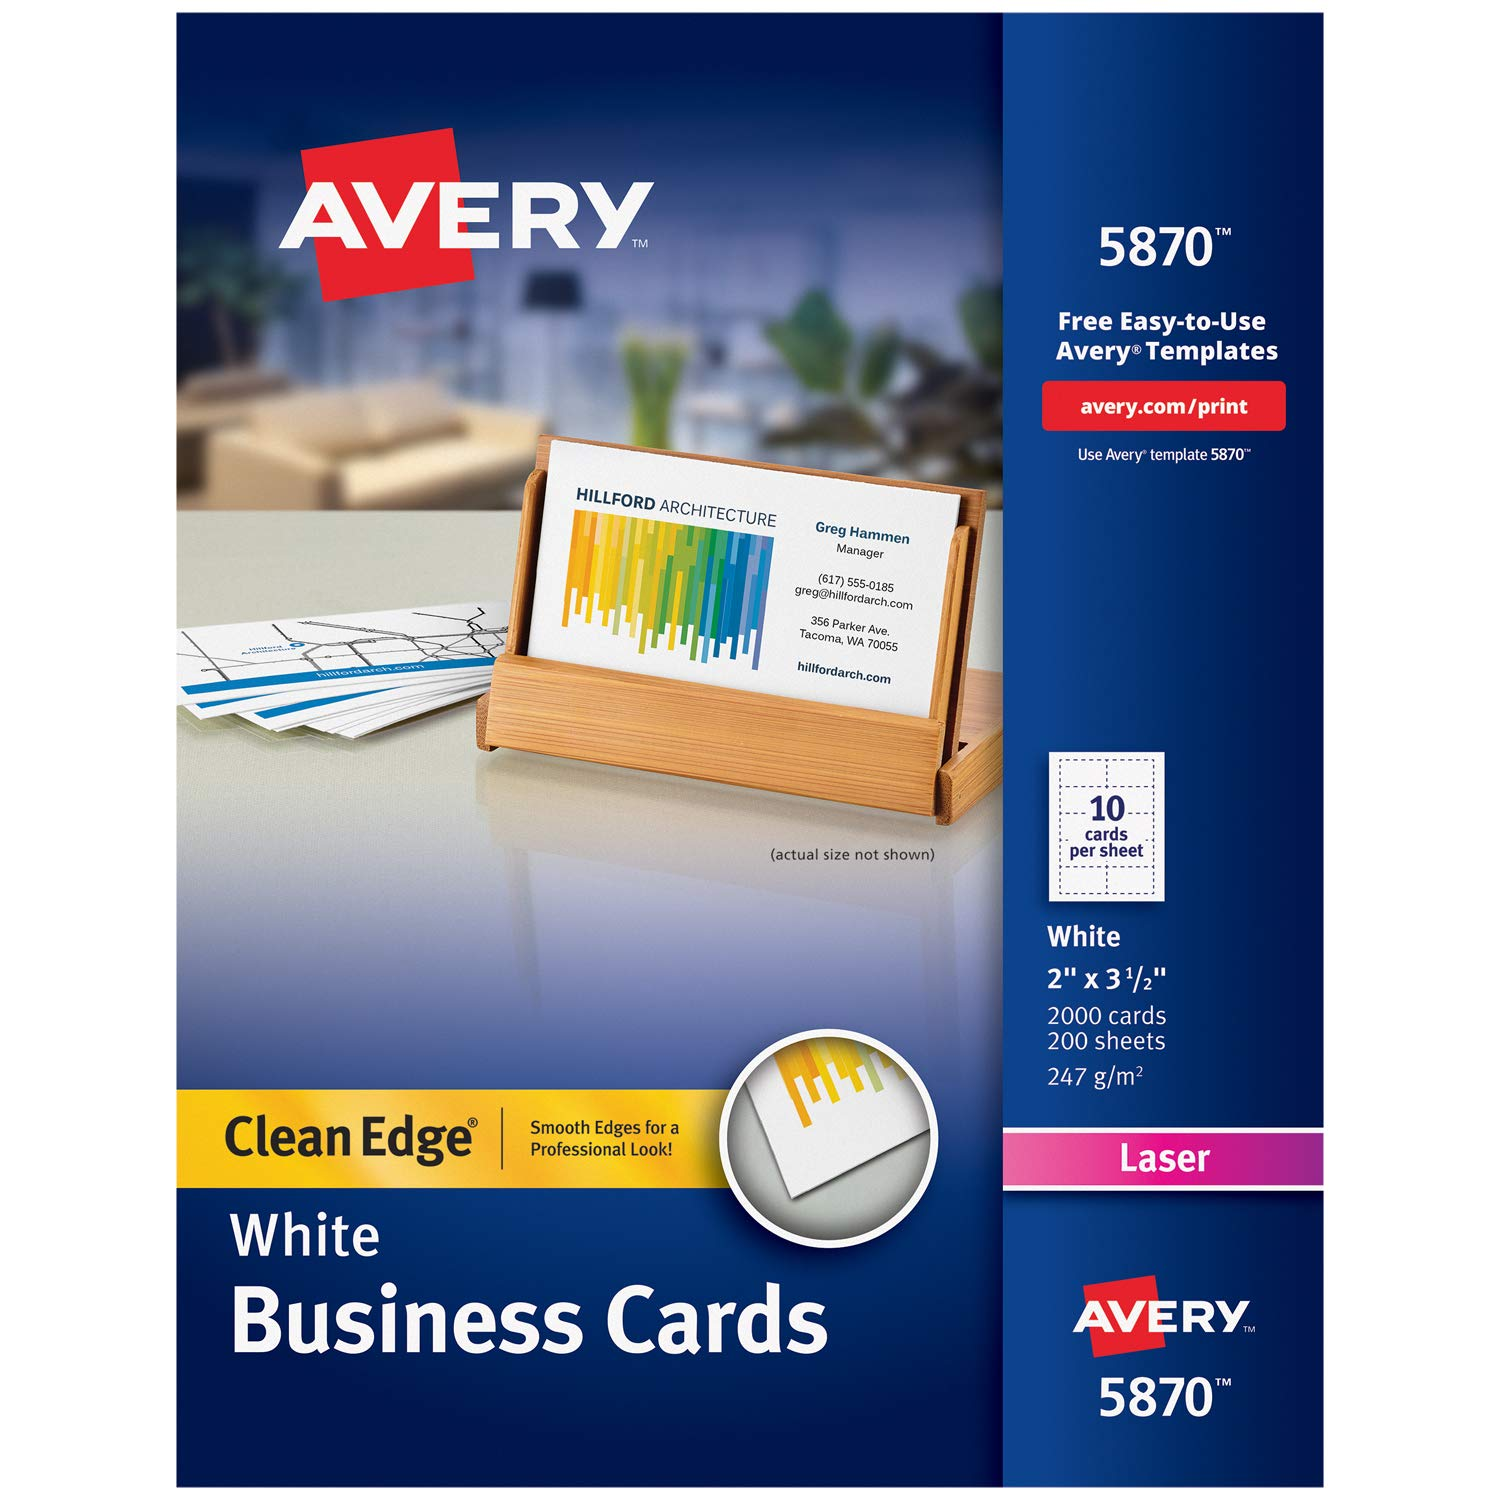 Avery Printable Business Cards, Laser Printers, 2,000 Cards, 2 x 3.5, Clean Edge (5870), White by AVERY